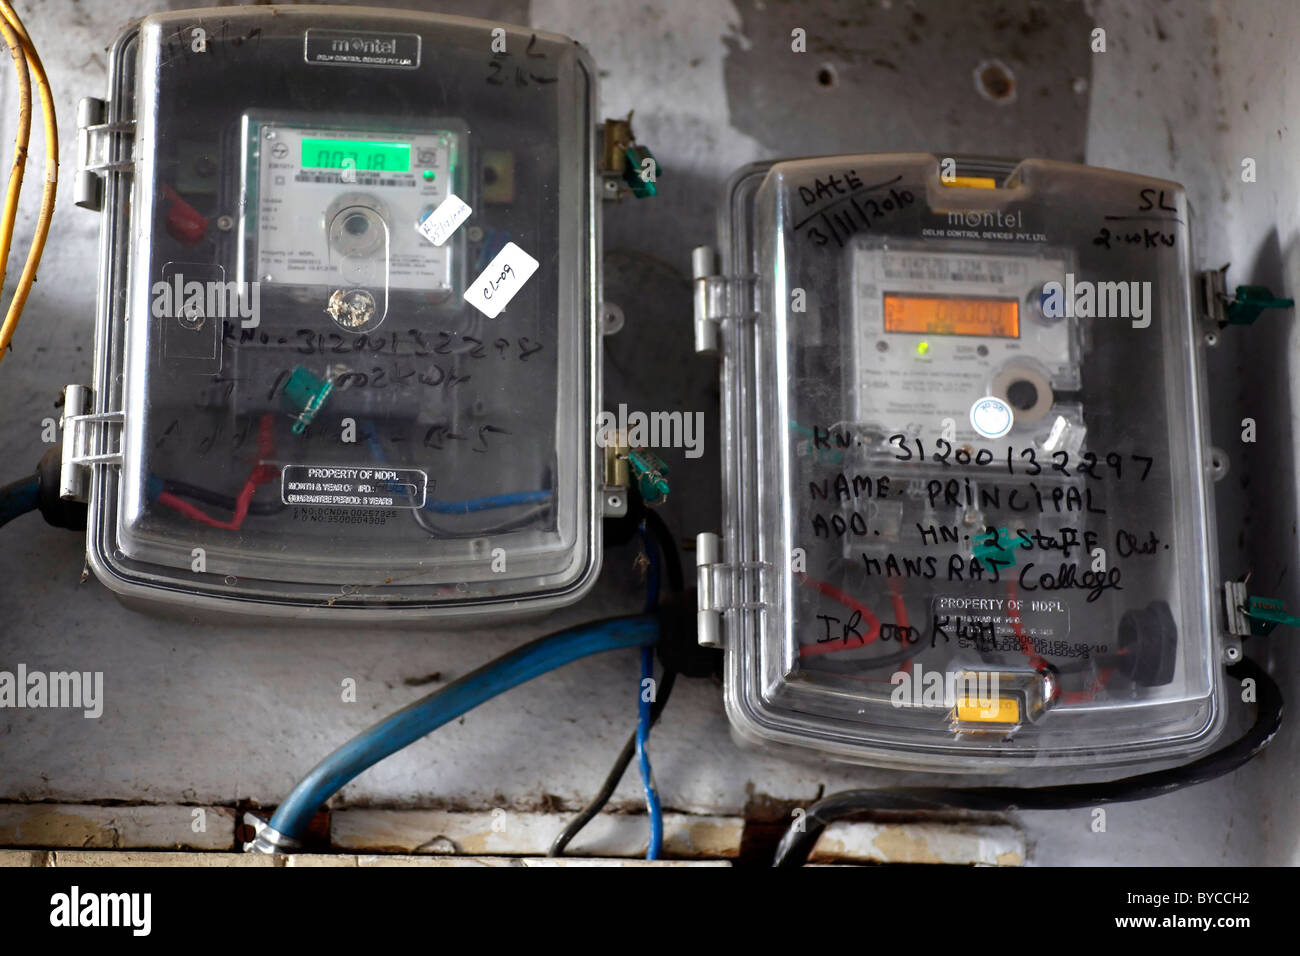 Electric Meter 'Electricity Meter' Machine Old 'Electricity consumption' Civic Supply Electric Supply - Stock Image